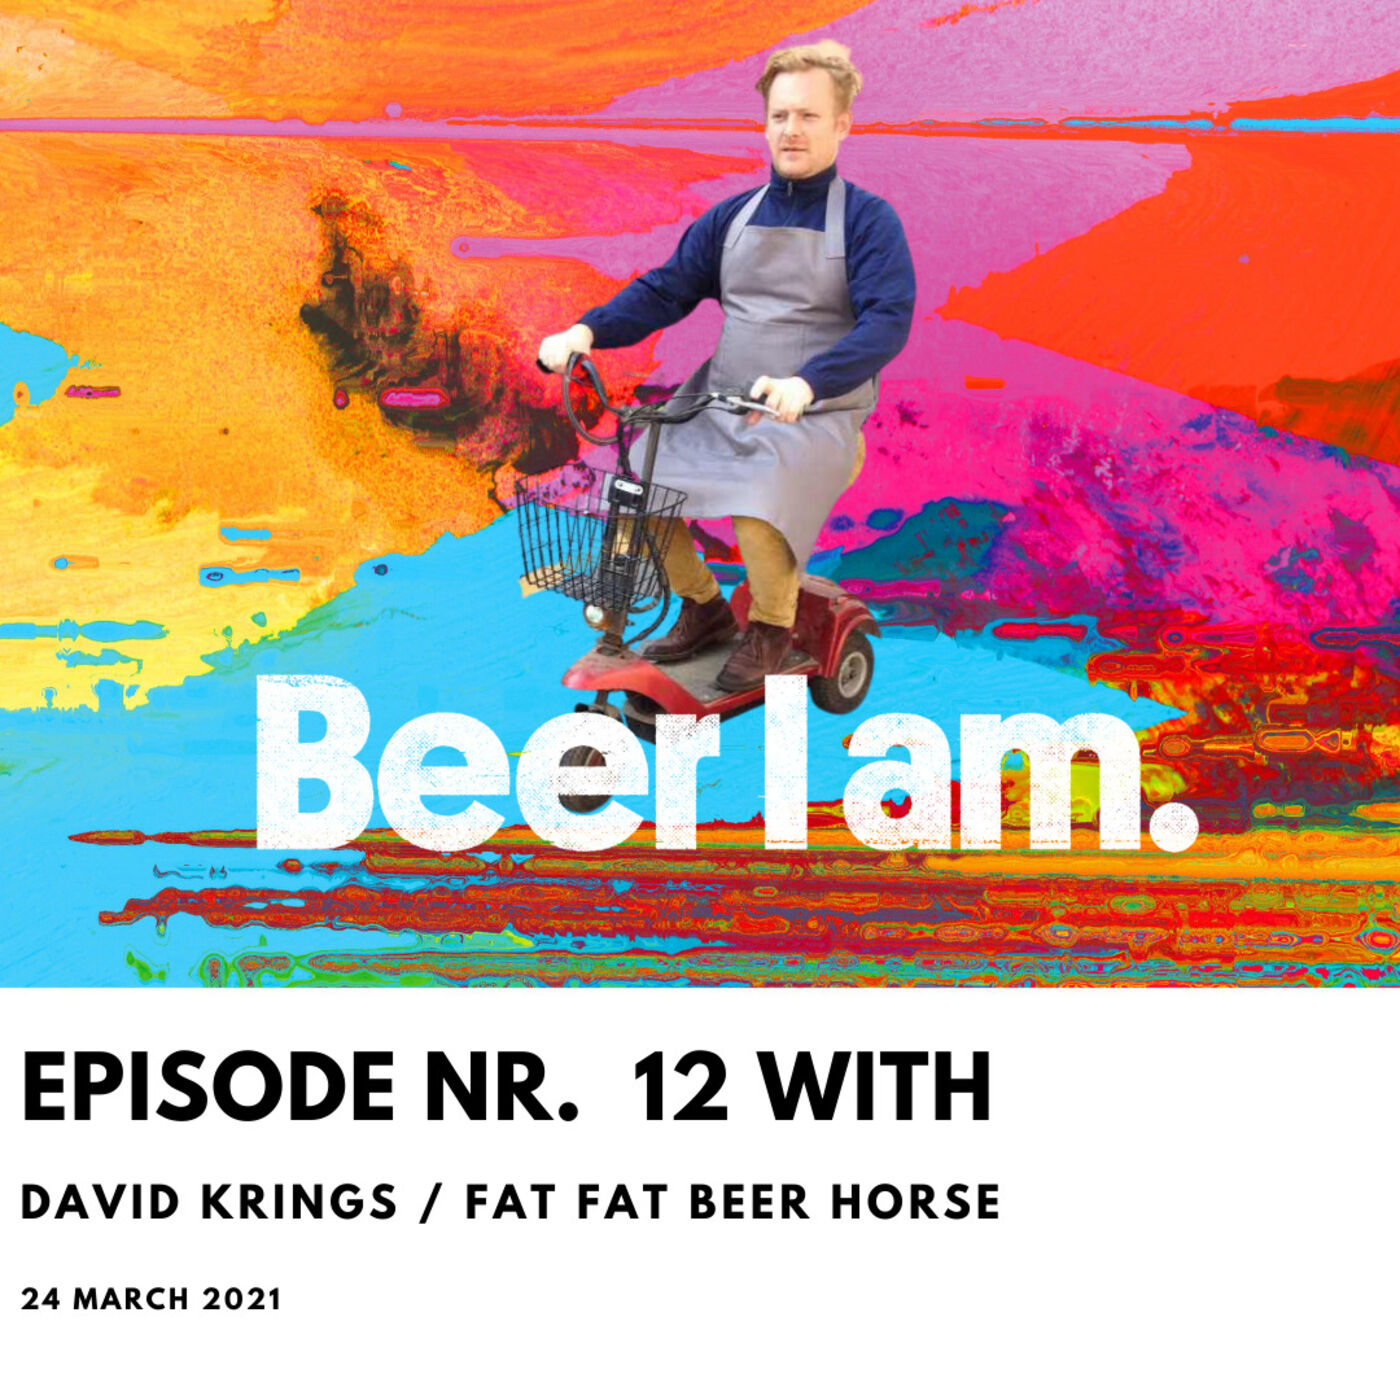 BEER I AM Podcast Nr. 12 David Krings / Product Design & FAT FAT BEER HORSE